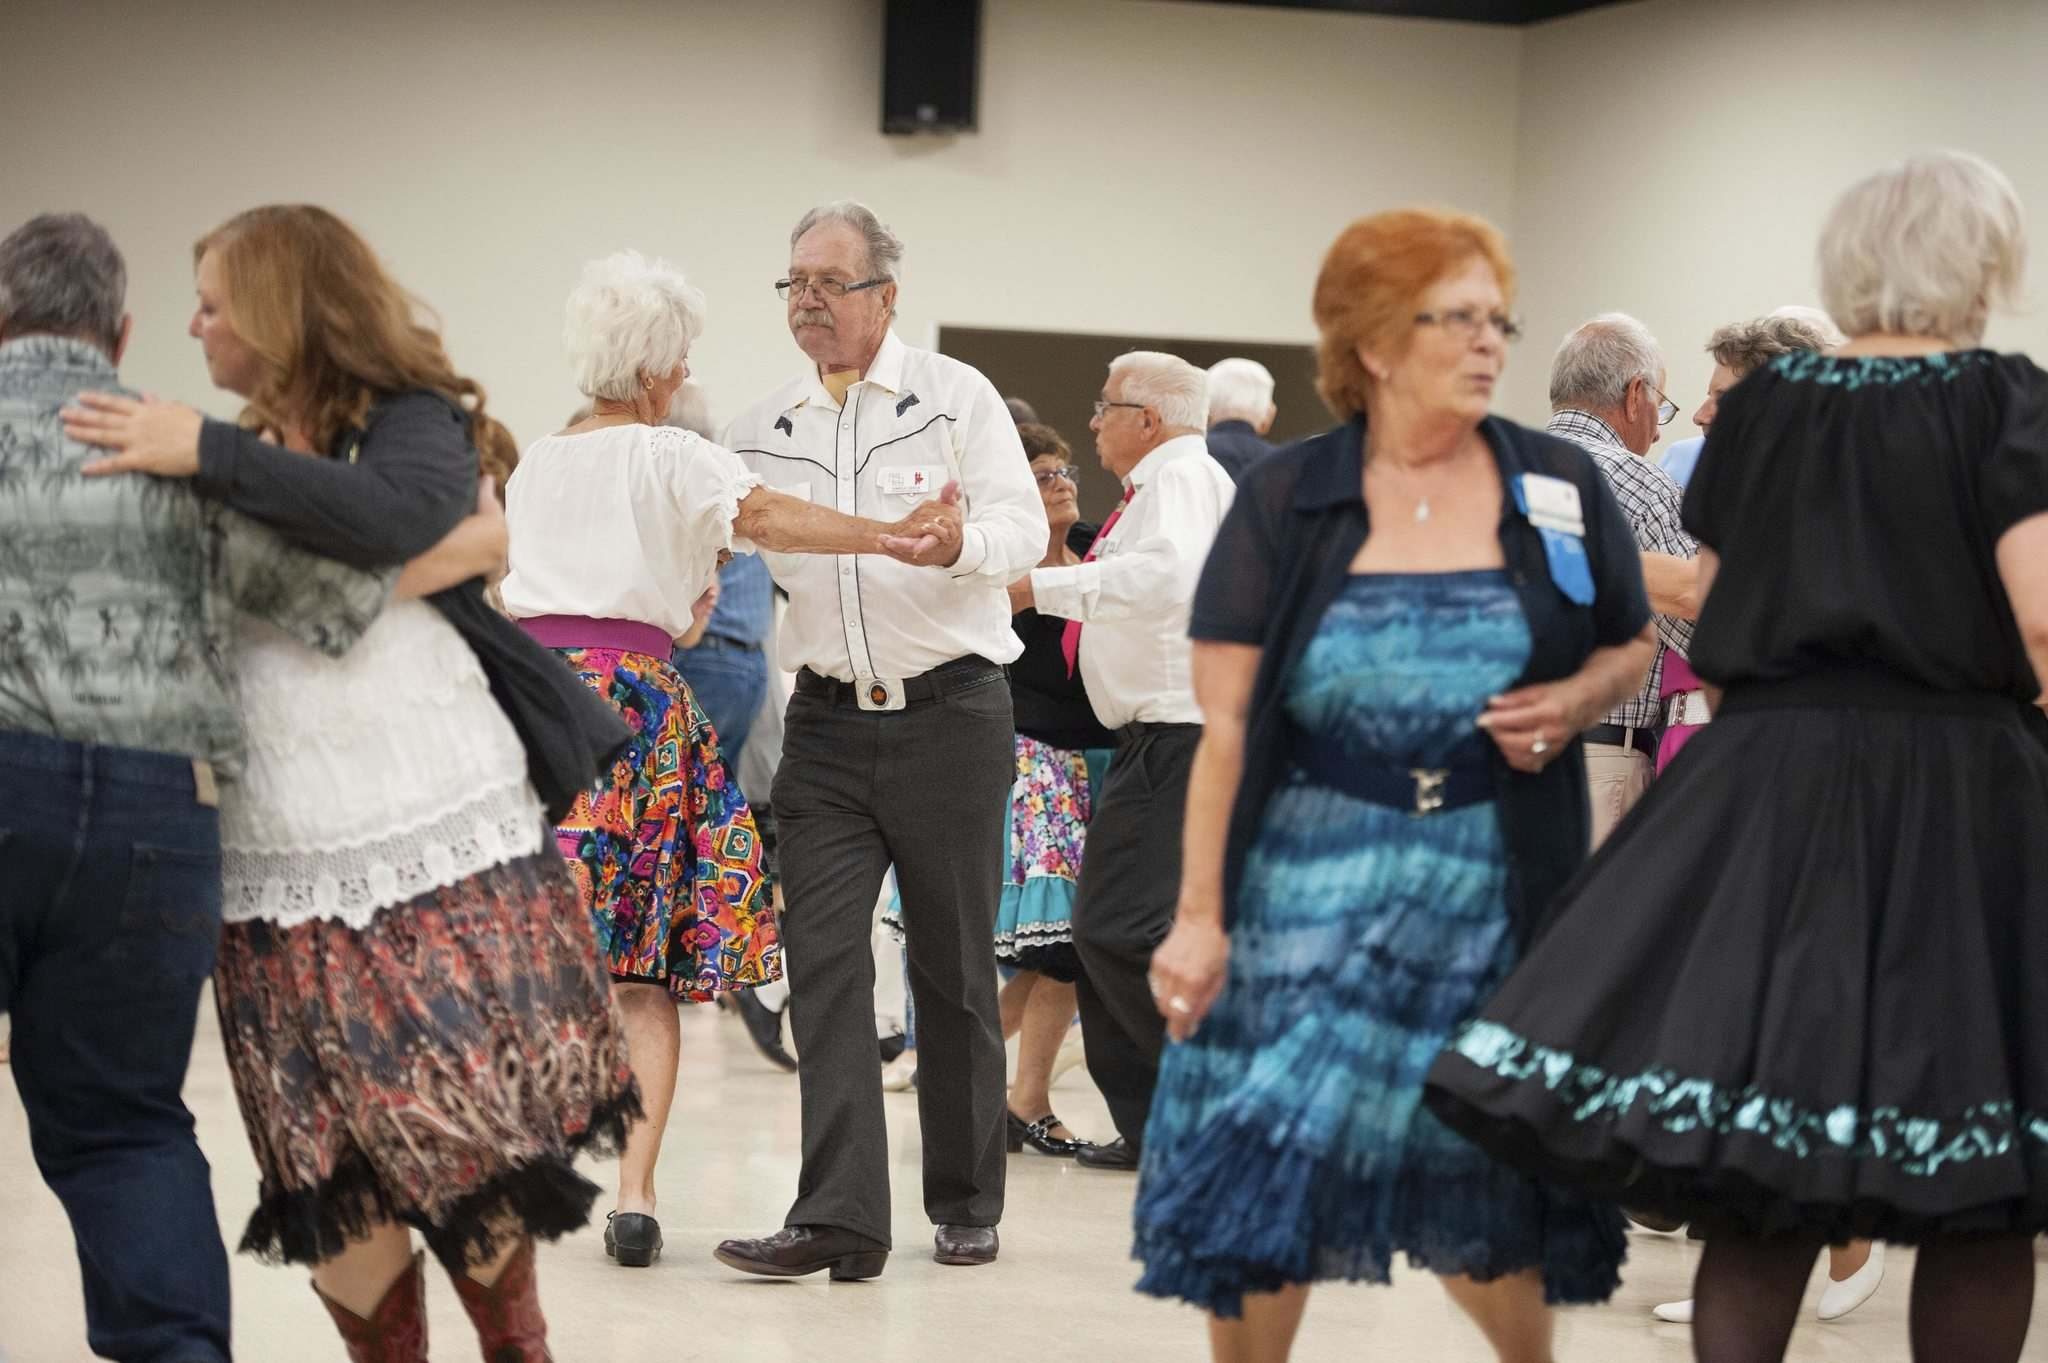 MIKE SUDOMA / WINNIPEG FREE PRESS</p><p>The Grande Squares dancers kick up their heels every Monday night from September to May at the Norberry-Glenlee Community Centre.</p>